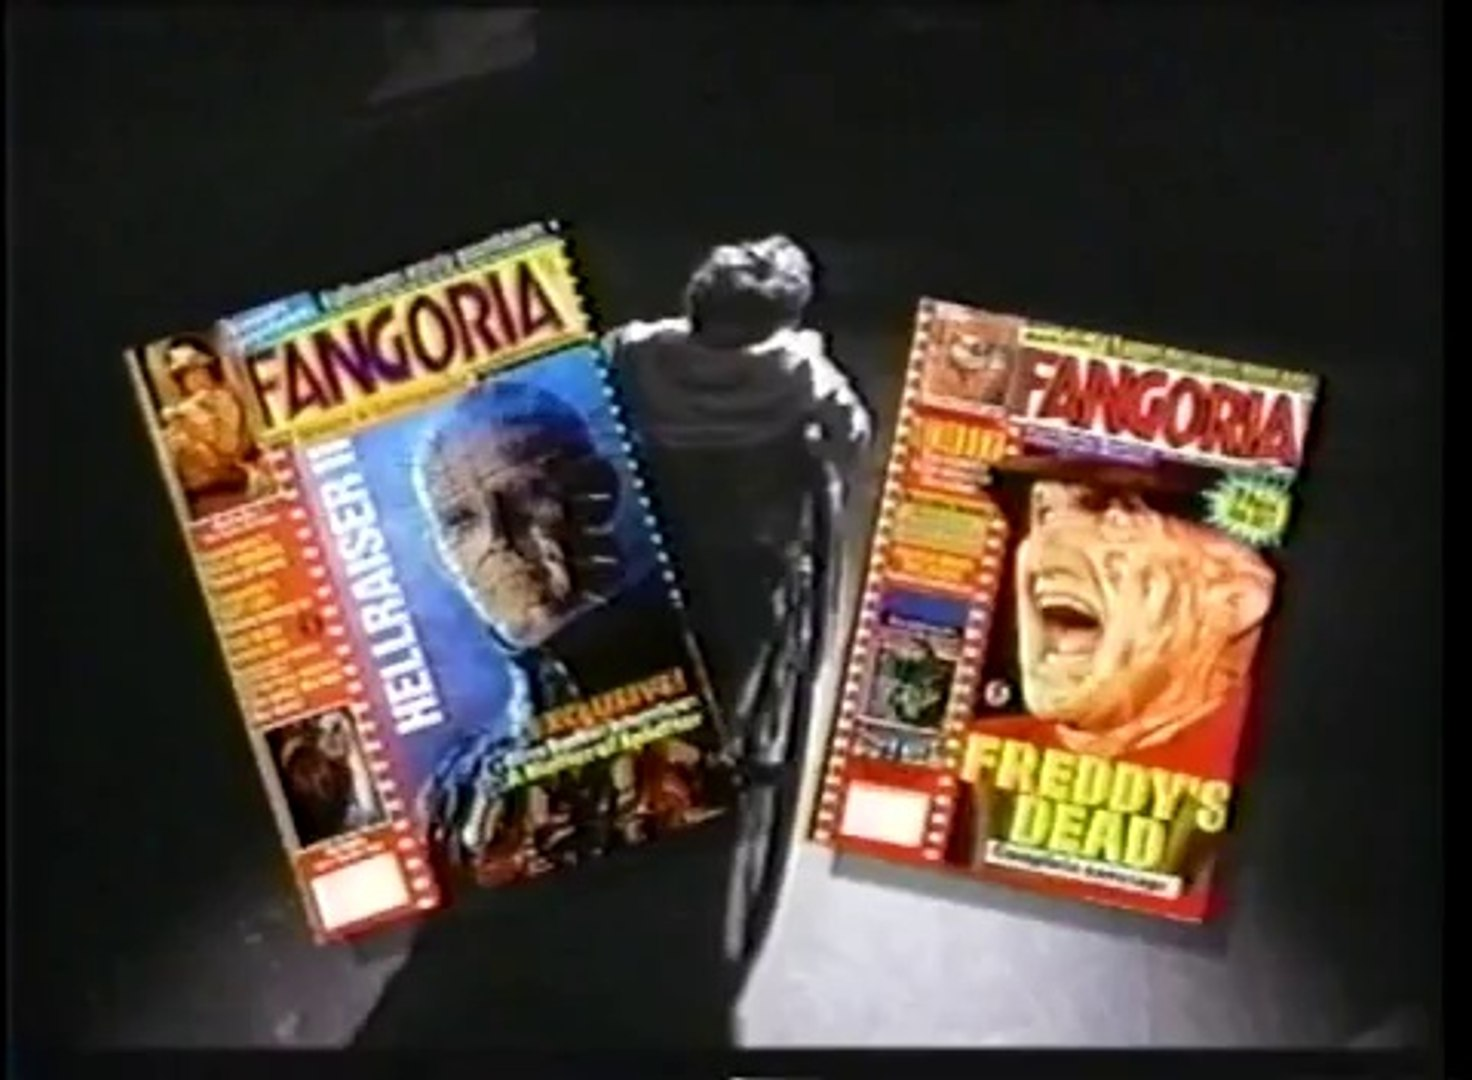 Sneak Preview - Severed Ties (1992) and Children of the Night (1991)